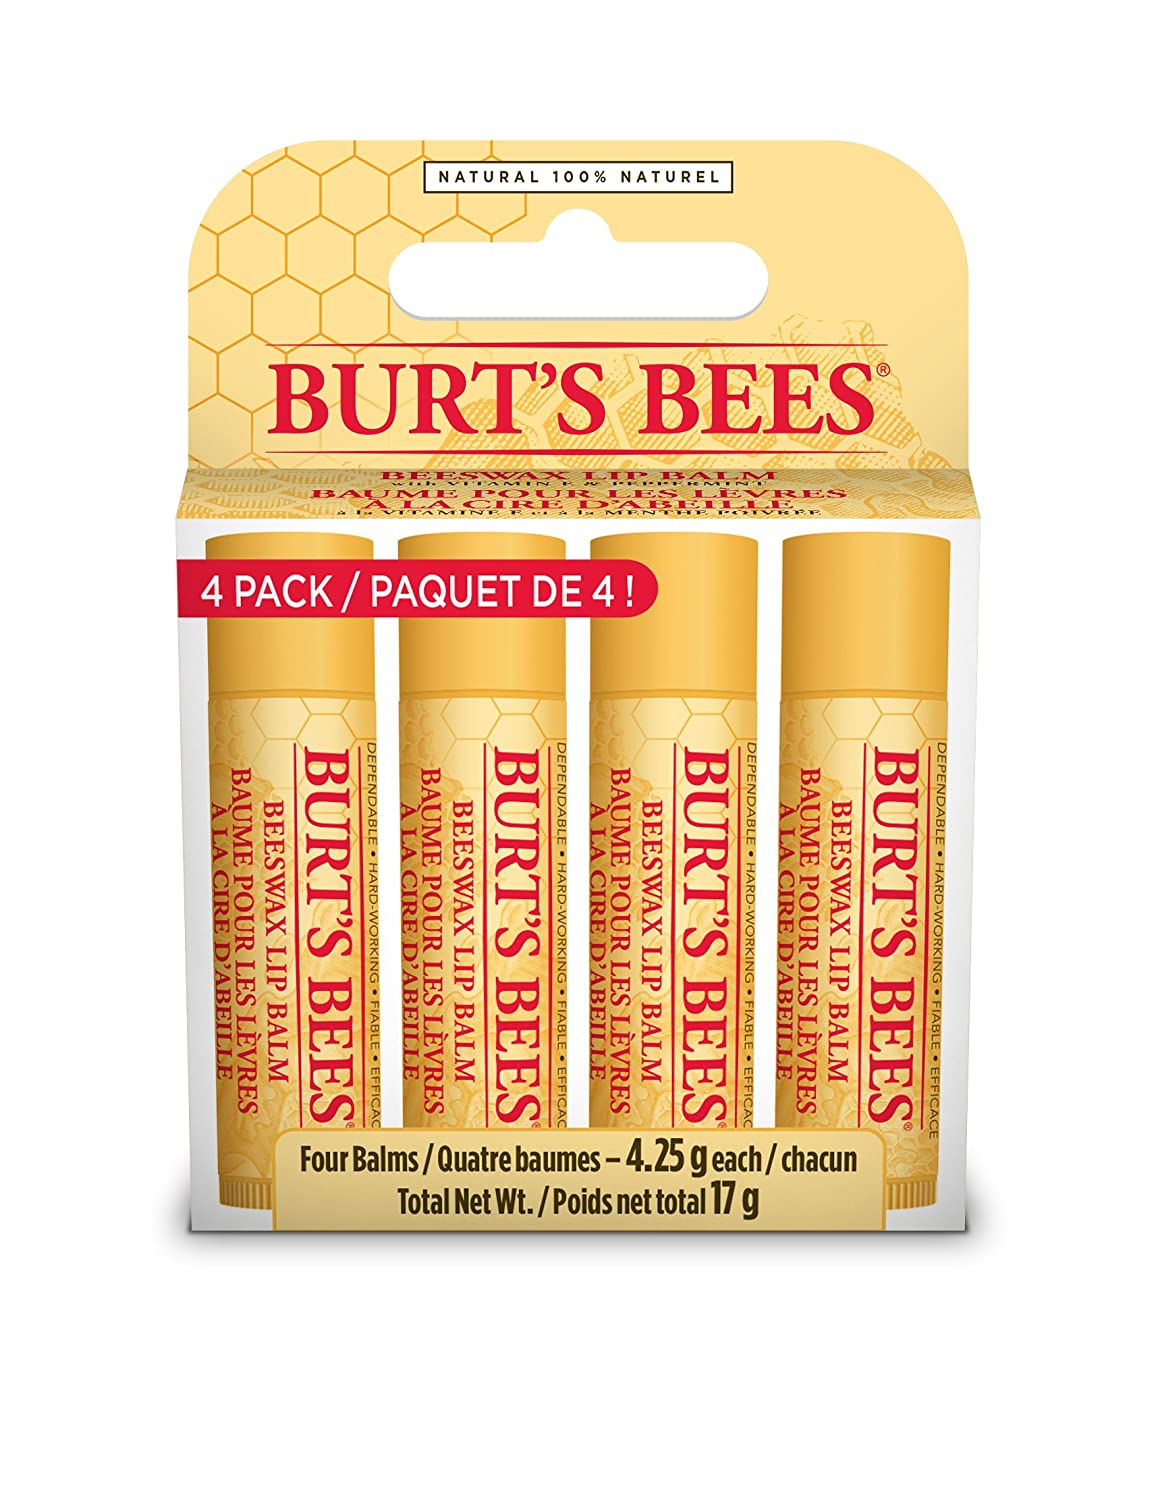 Burt's Bees Beeswax Bounty Assorted Fruit Lip Balm Holiday Gift Set, 4 Lip Balms - Wild Cherry, Pink Grapefruit, Coconut & Pear and Strawberry Clorox Canada 90178-04